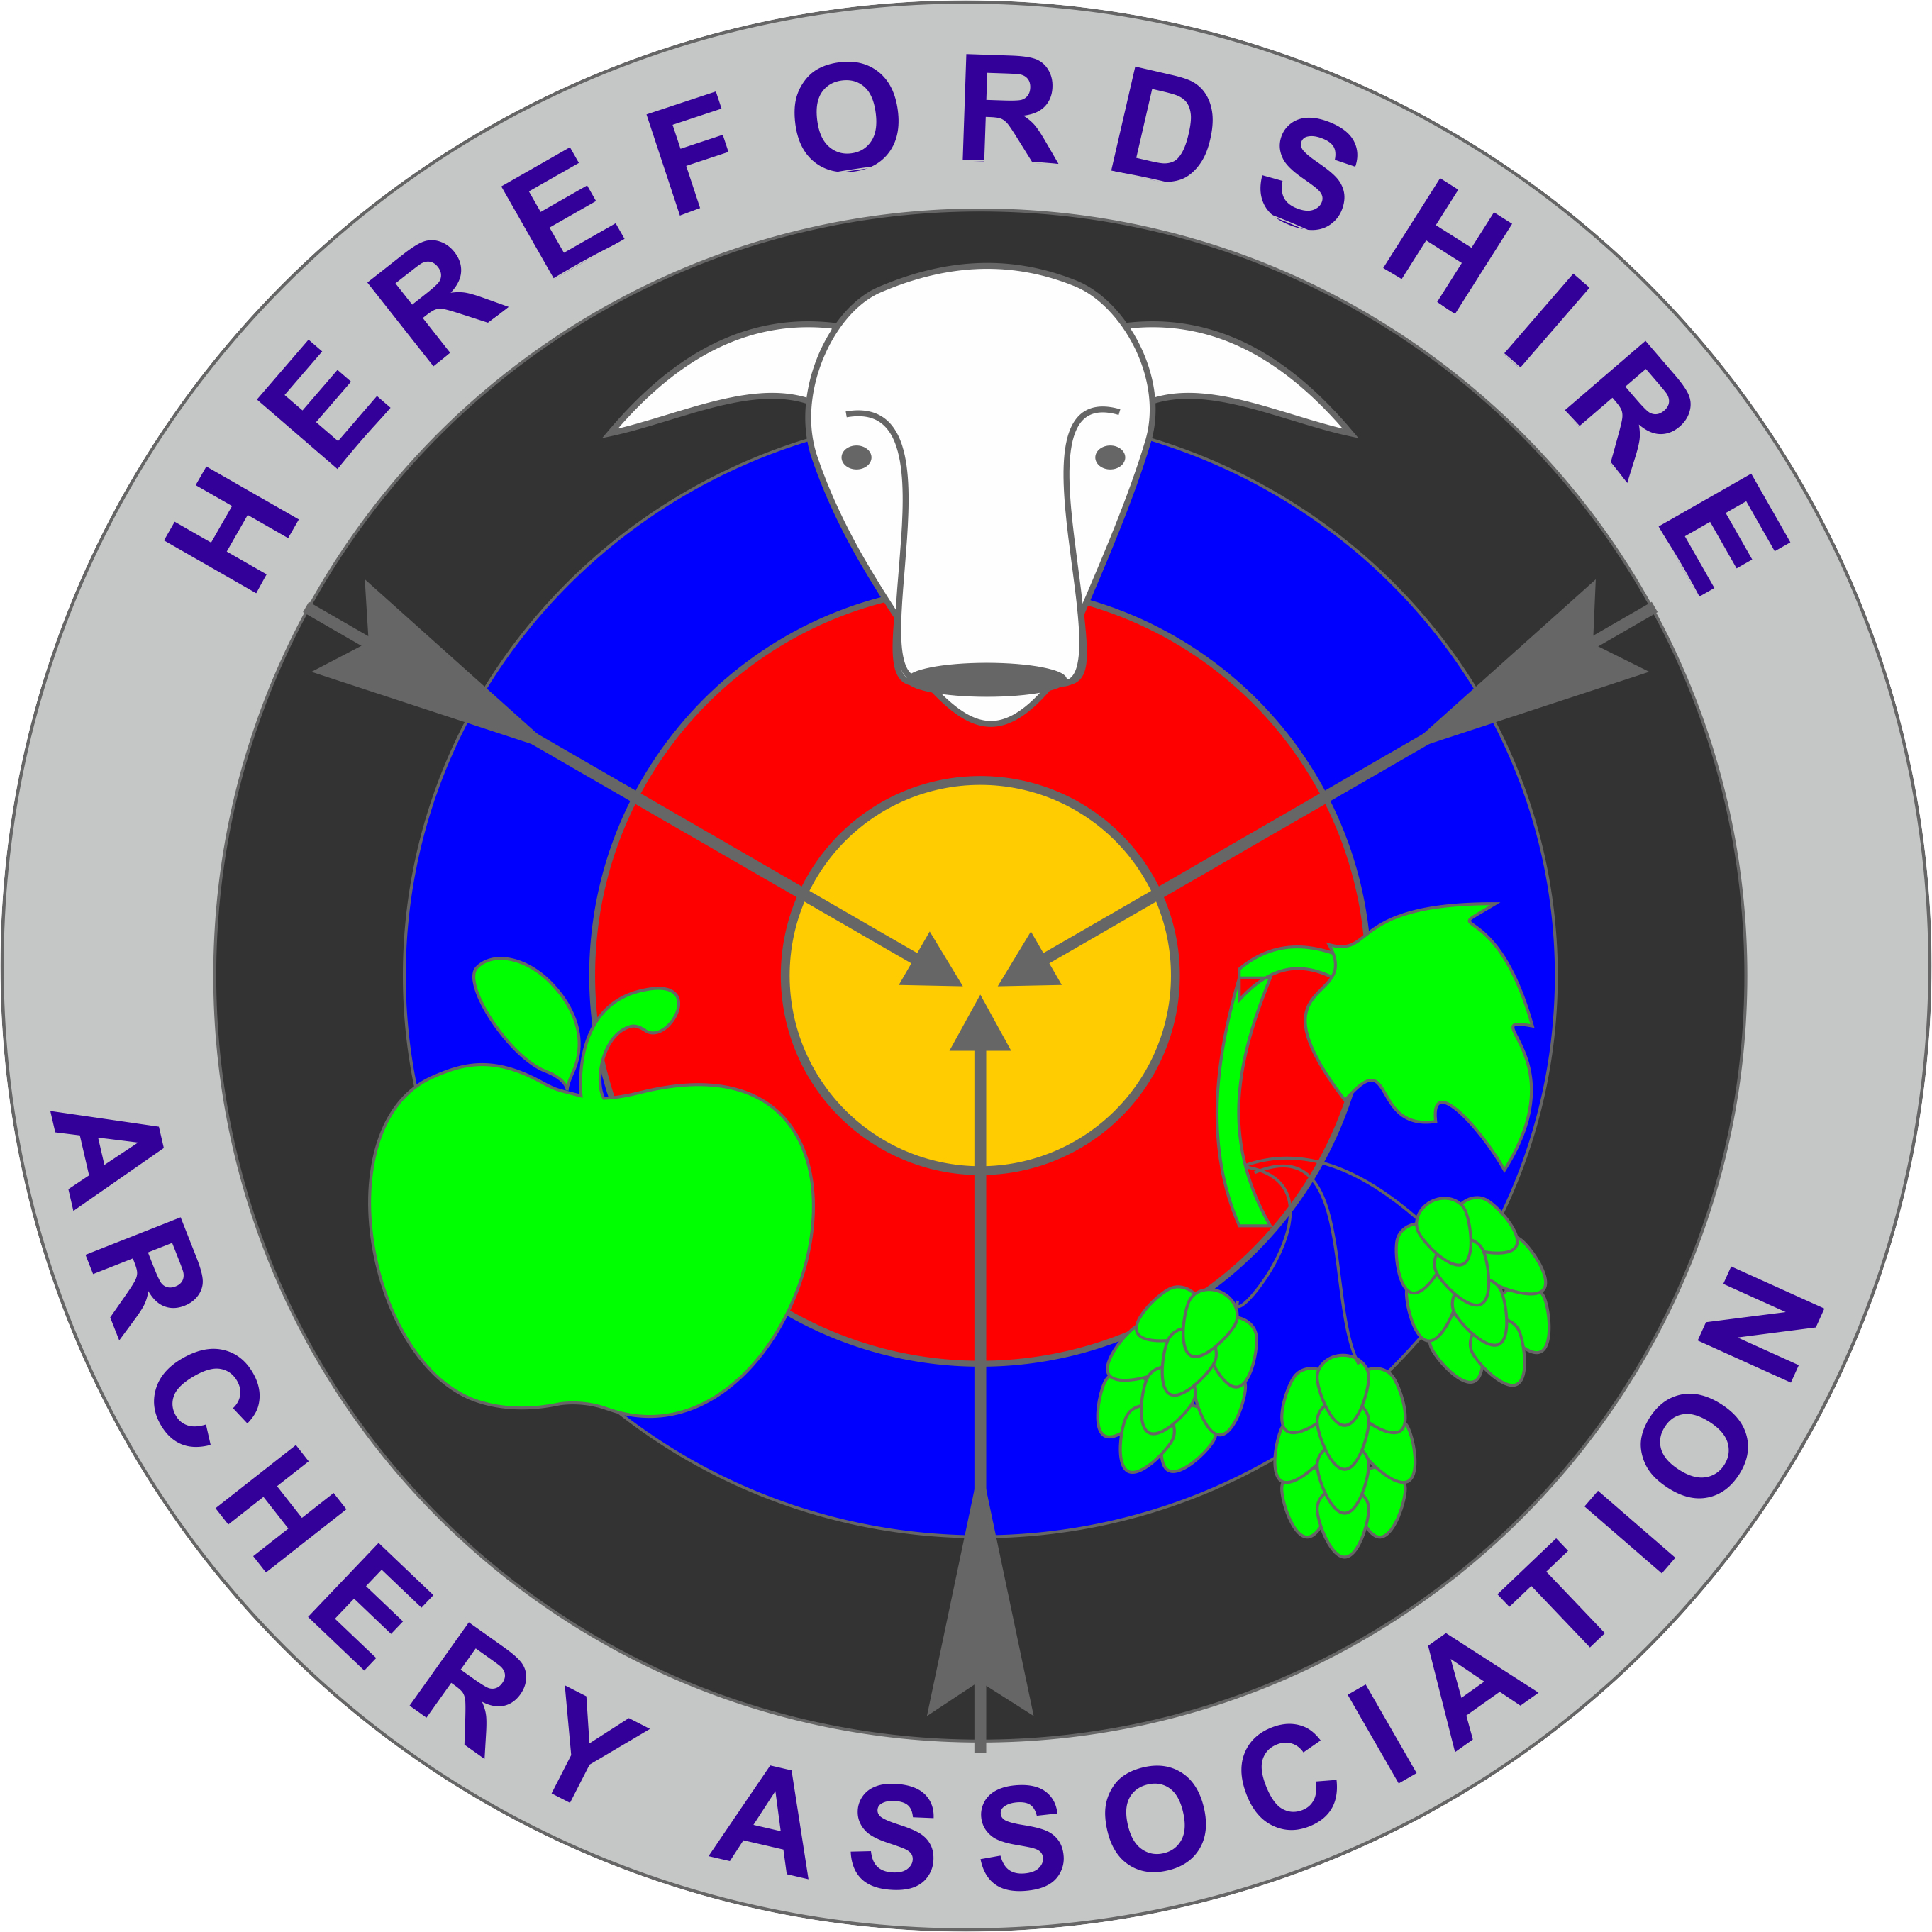 HAA County Matters - association logo with apple, hops and bulls head set on a target face with 3 arrows meeting in the middle